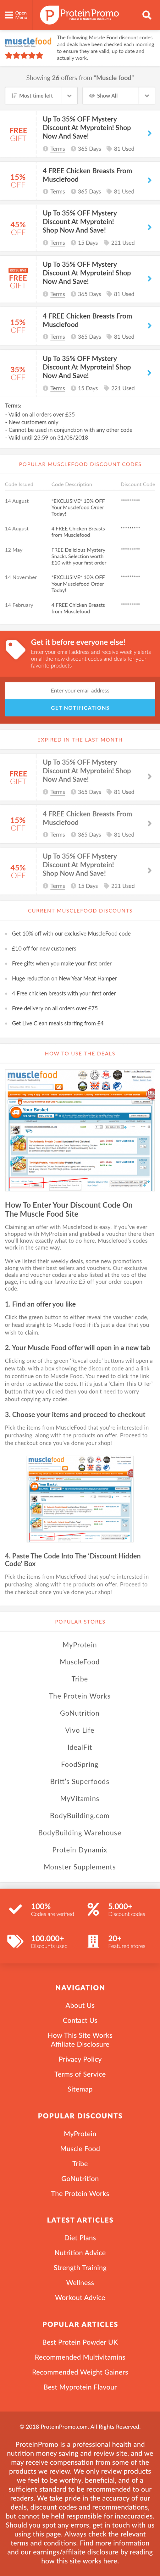 ProteinPromo coupon responsive page design